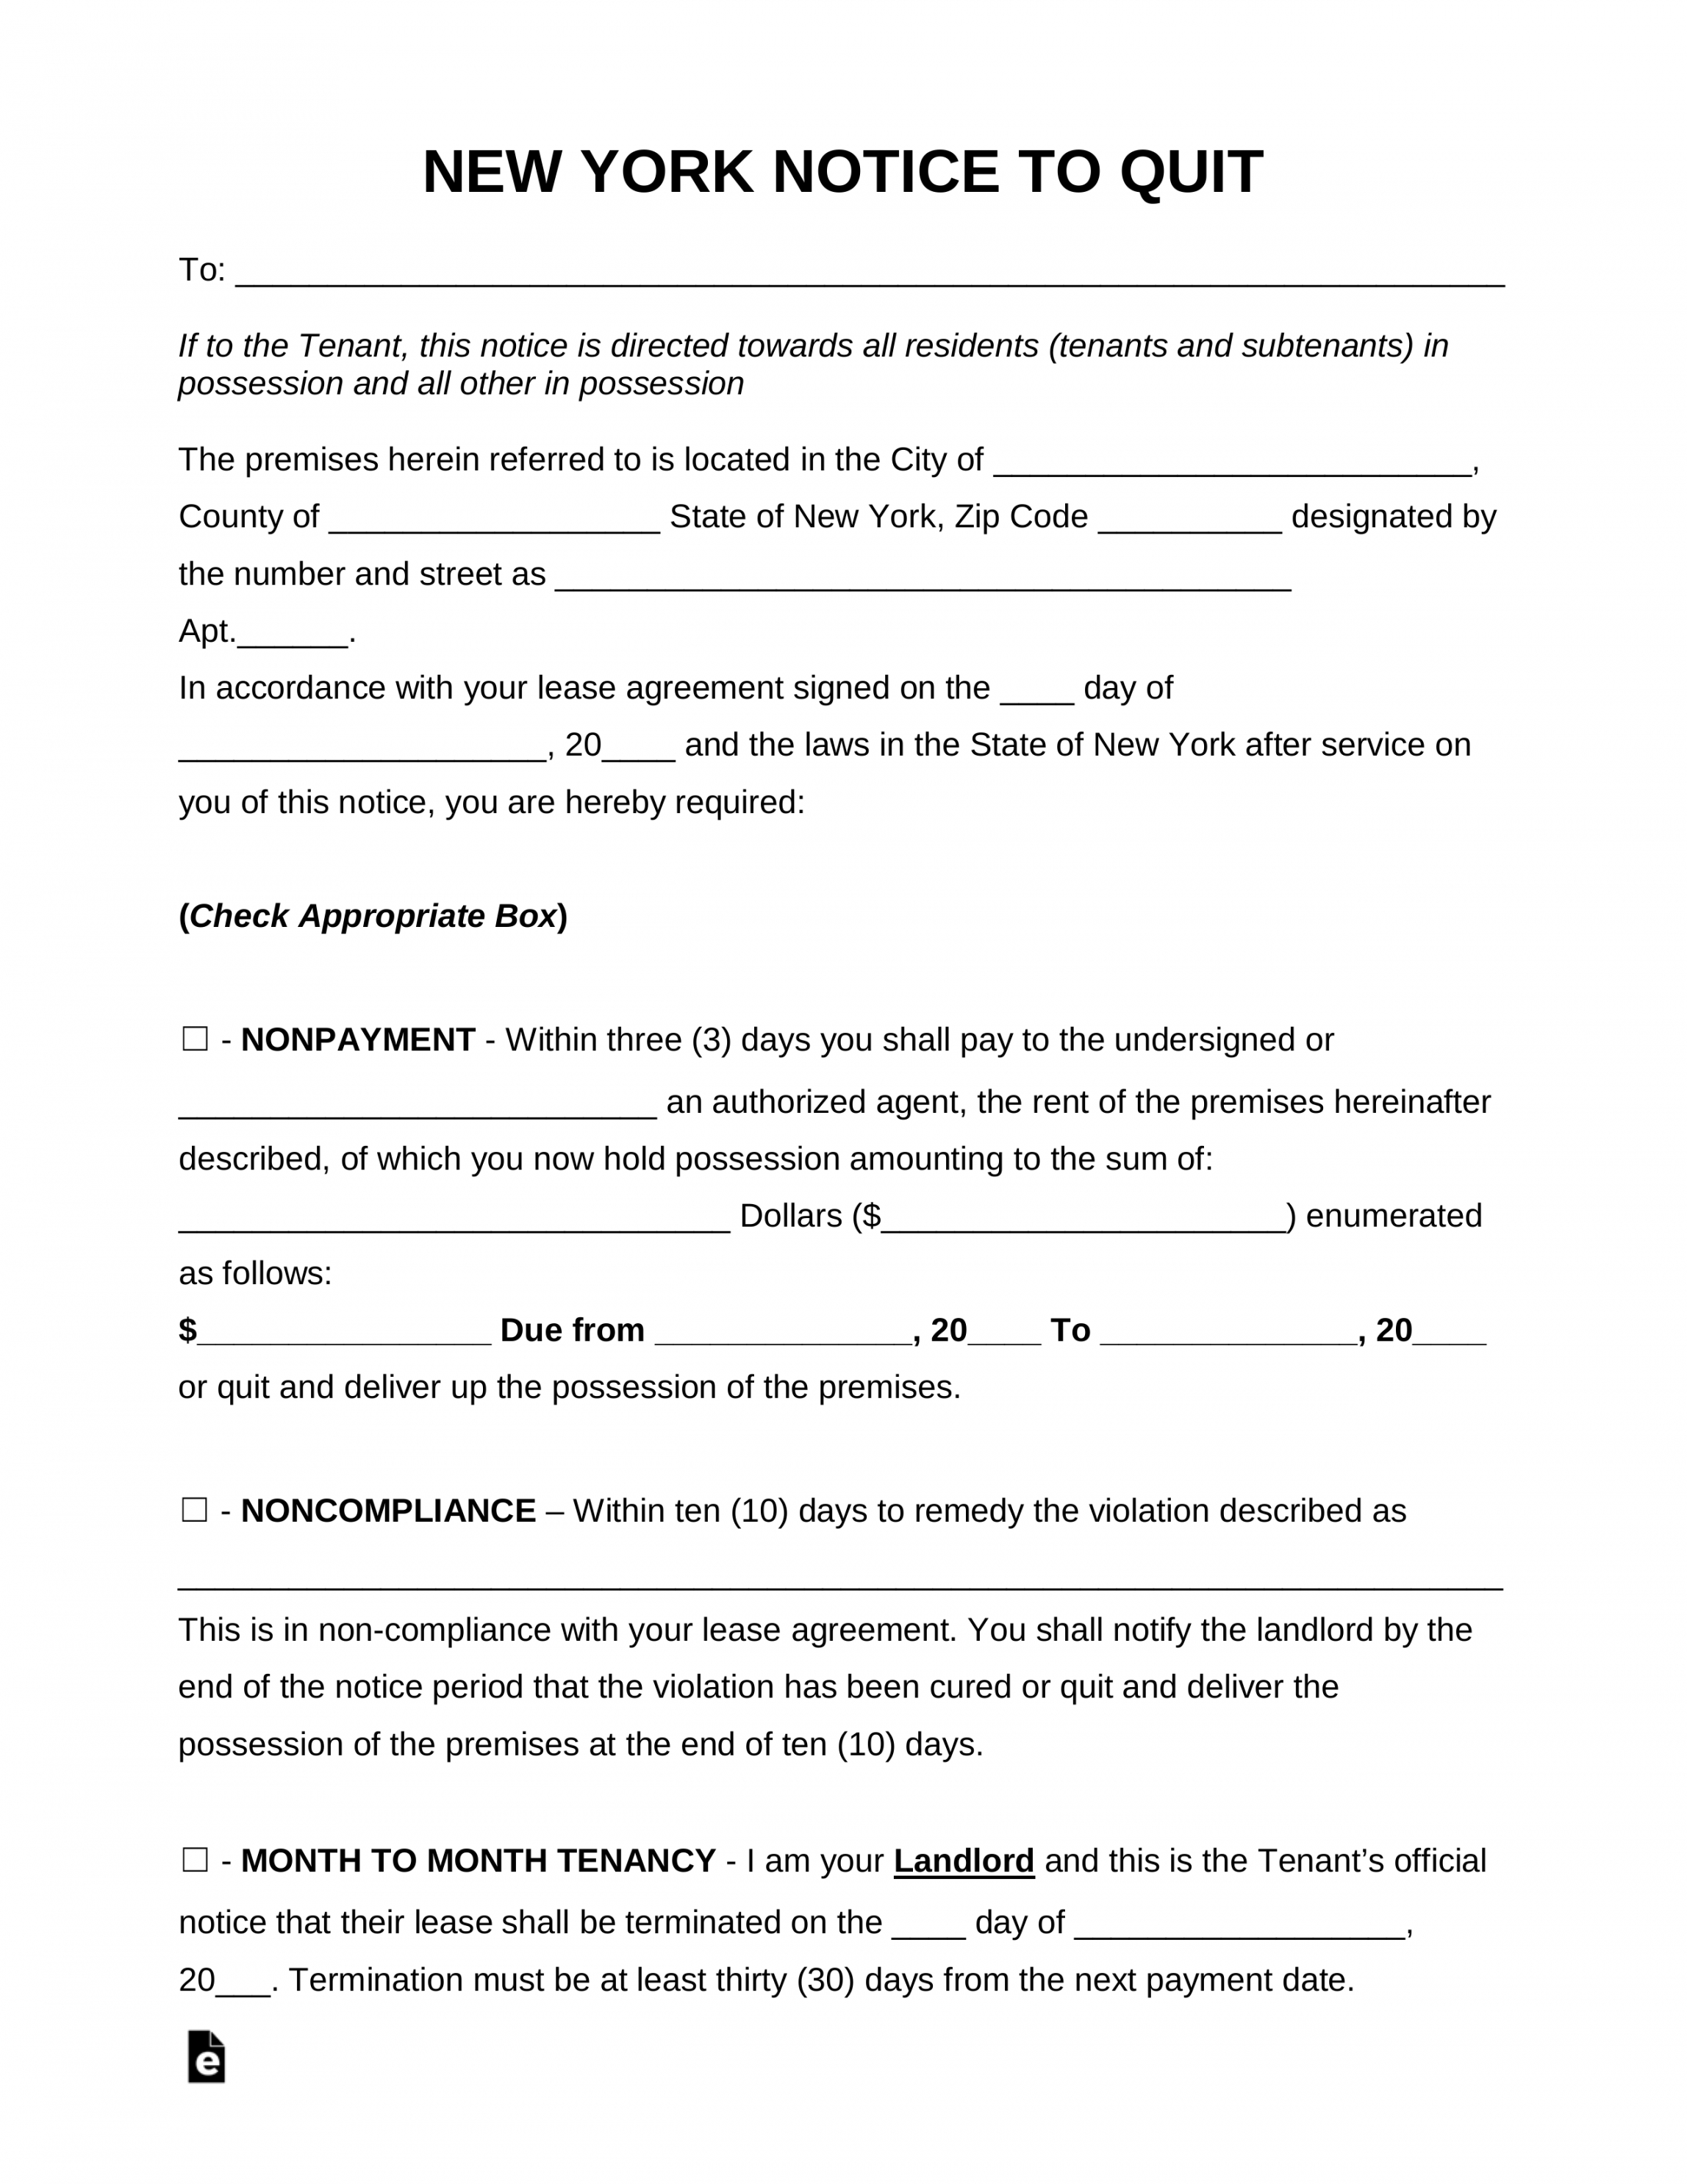 printable free new york eviction notice forms  process and laws  pdf eviction notice template ny doc